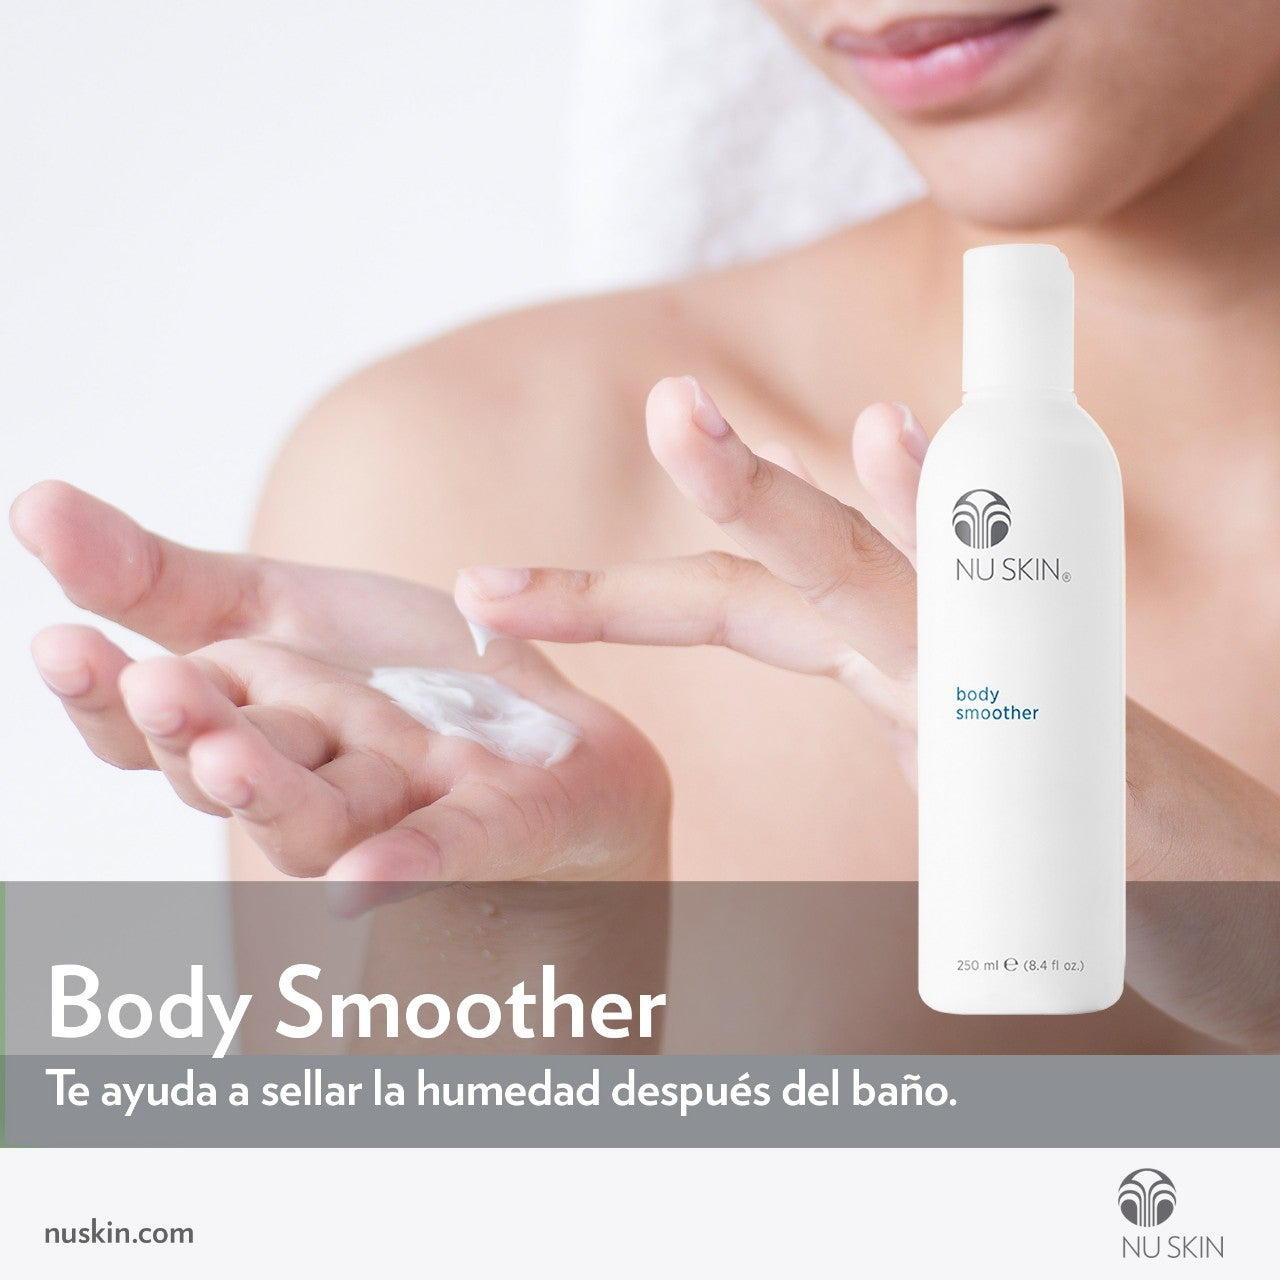 Body Smoother 3